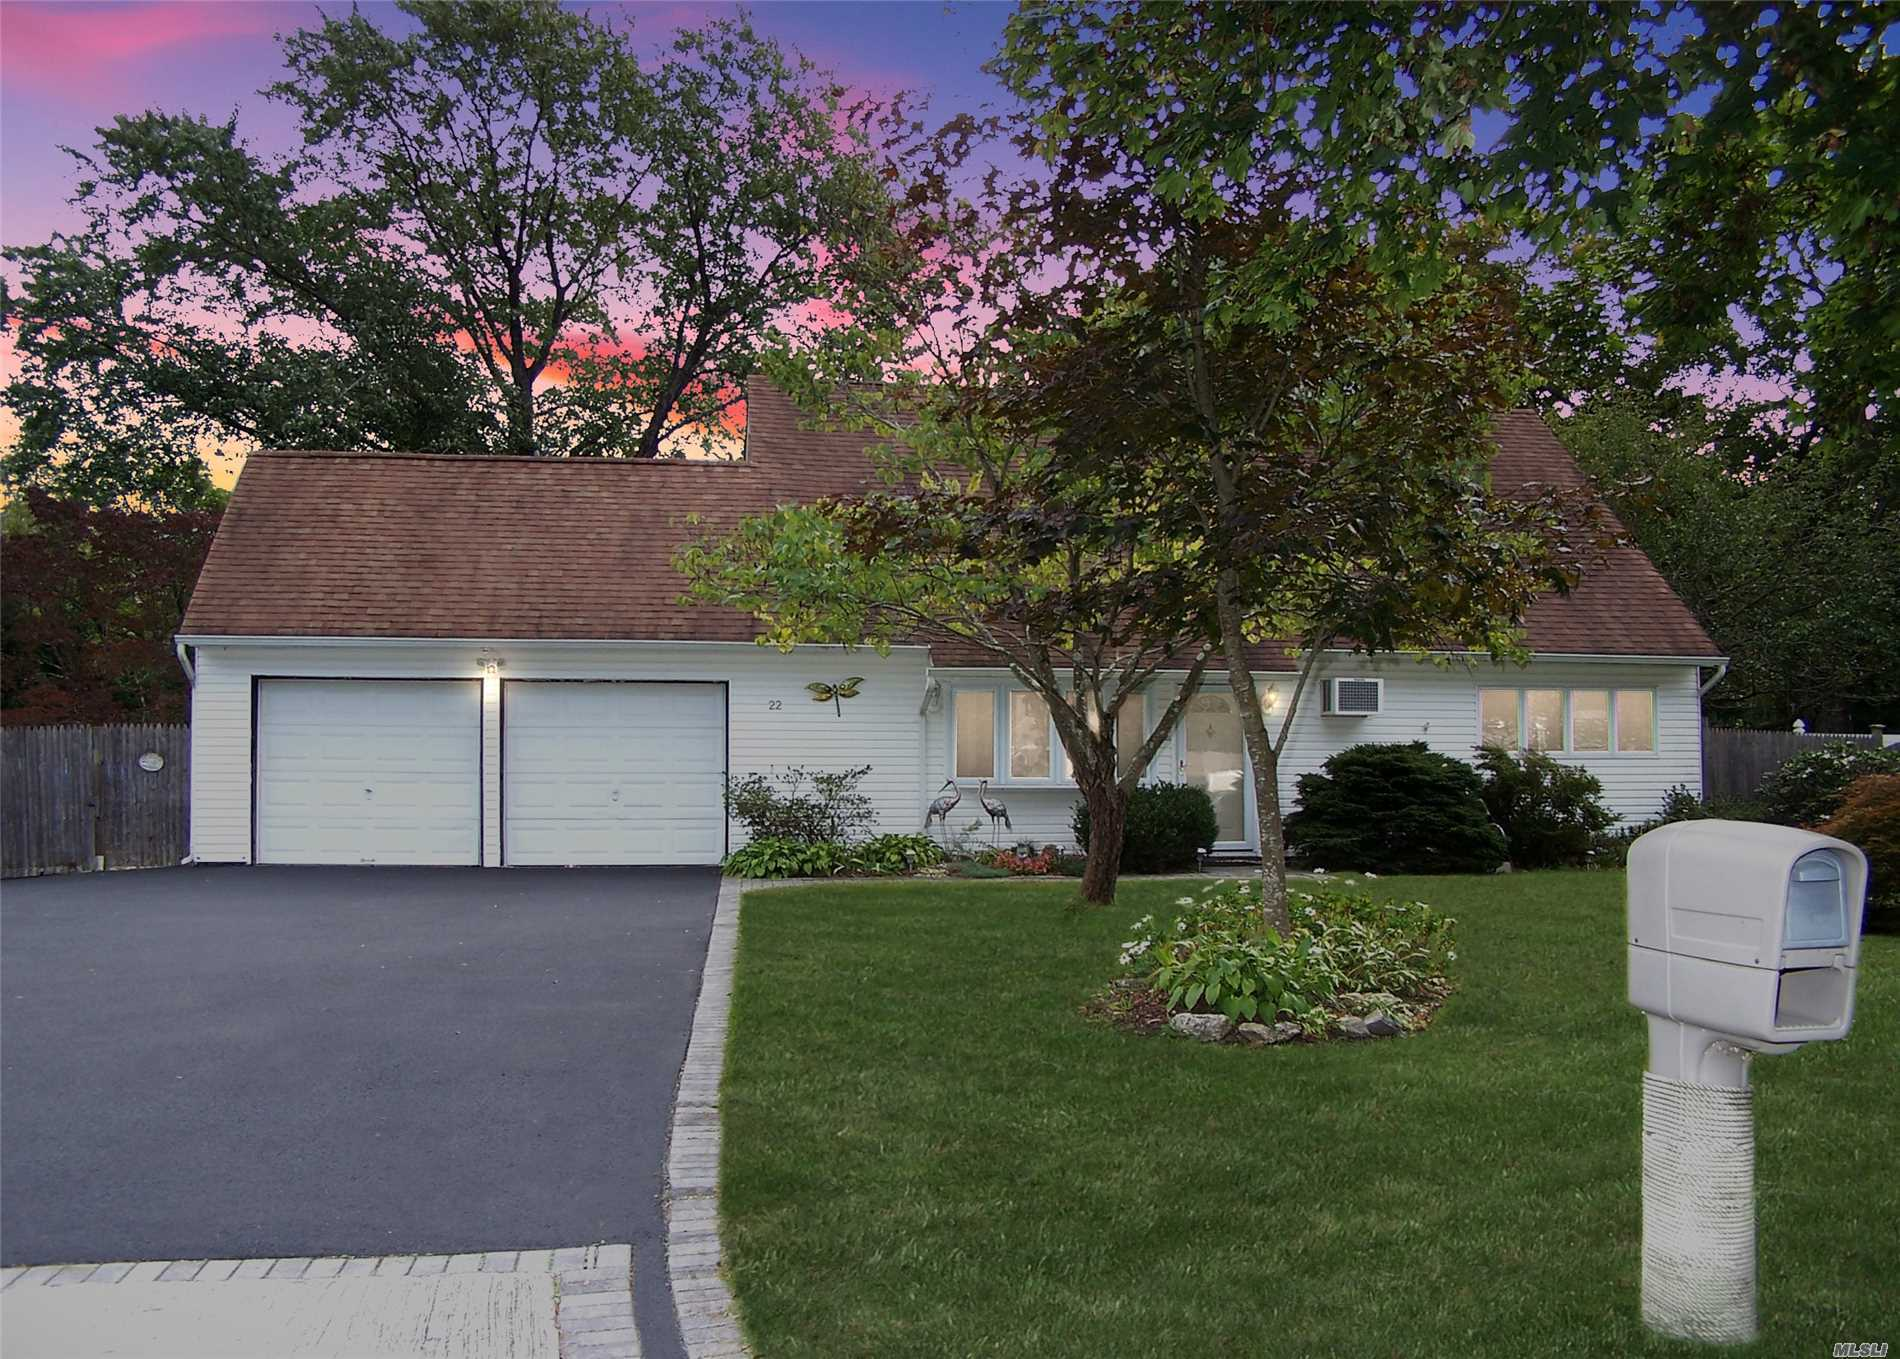 Welcome To Your New Home. This 4/5 Bedroom Expanded Cape Located In The Tanglewood Hills Section Of Coram Is Perfect For Any 1st Time Buyers Or Any Growing Family. Upgrades Inc: Newer Kitchen W/ Corian Counter Topps, Wood Cabinets, & Custom Back Splash. Semi-Open Floor Plan With Cathedral Ceilings And Balcony View From The Upper Level. Windows, Siding, Roof & Electric All Less Than 10 Years Old. Purchase This Home With A Piece Of Mind. Pool, Hot Tub, & Shed Staying As A Gift.